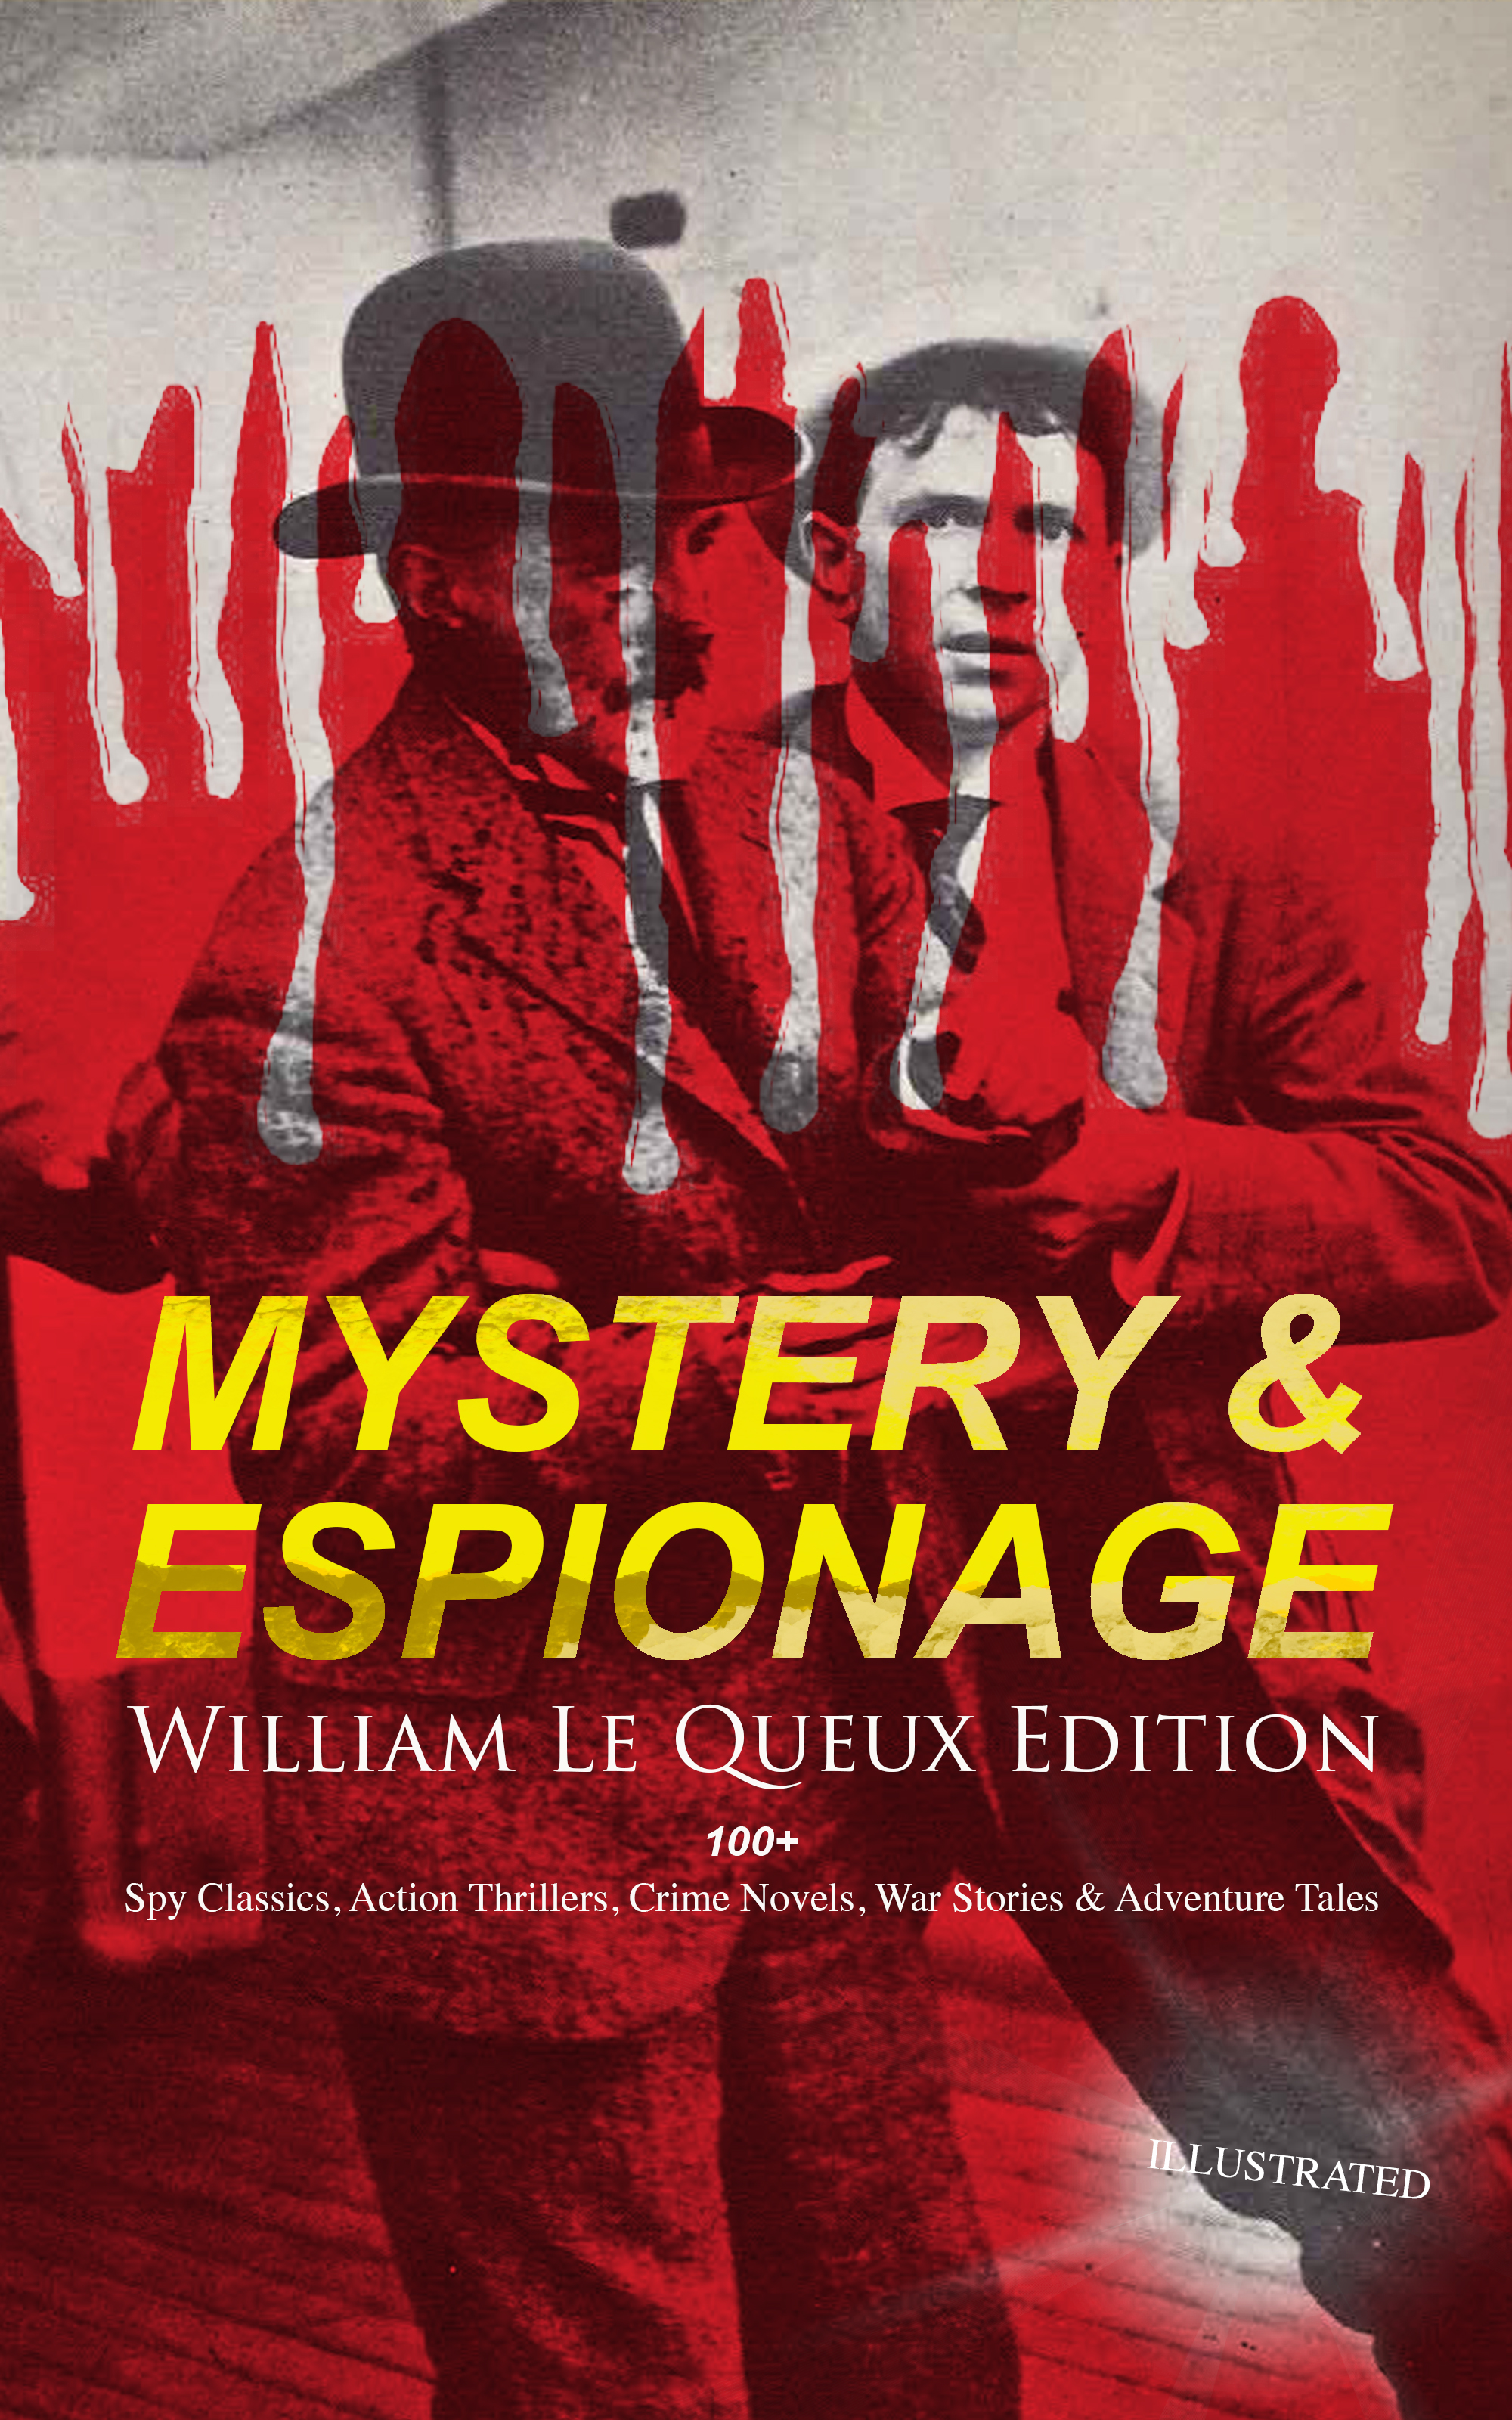 цена на William Le Queux MYSTERY & ESPIONAGE - William Le Queux Edition: 100+ Spy Classics, Action Thrillers, Crime Novels, War Stories & Adventure Tales (Illustrated)